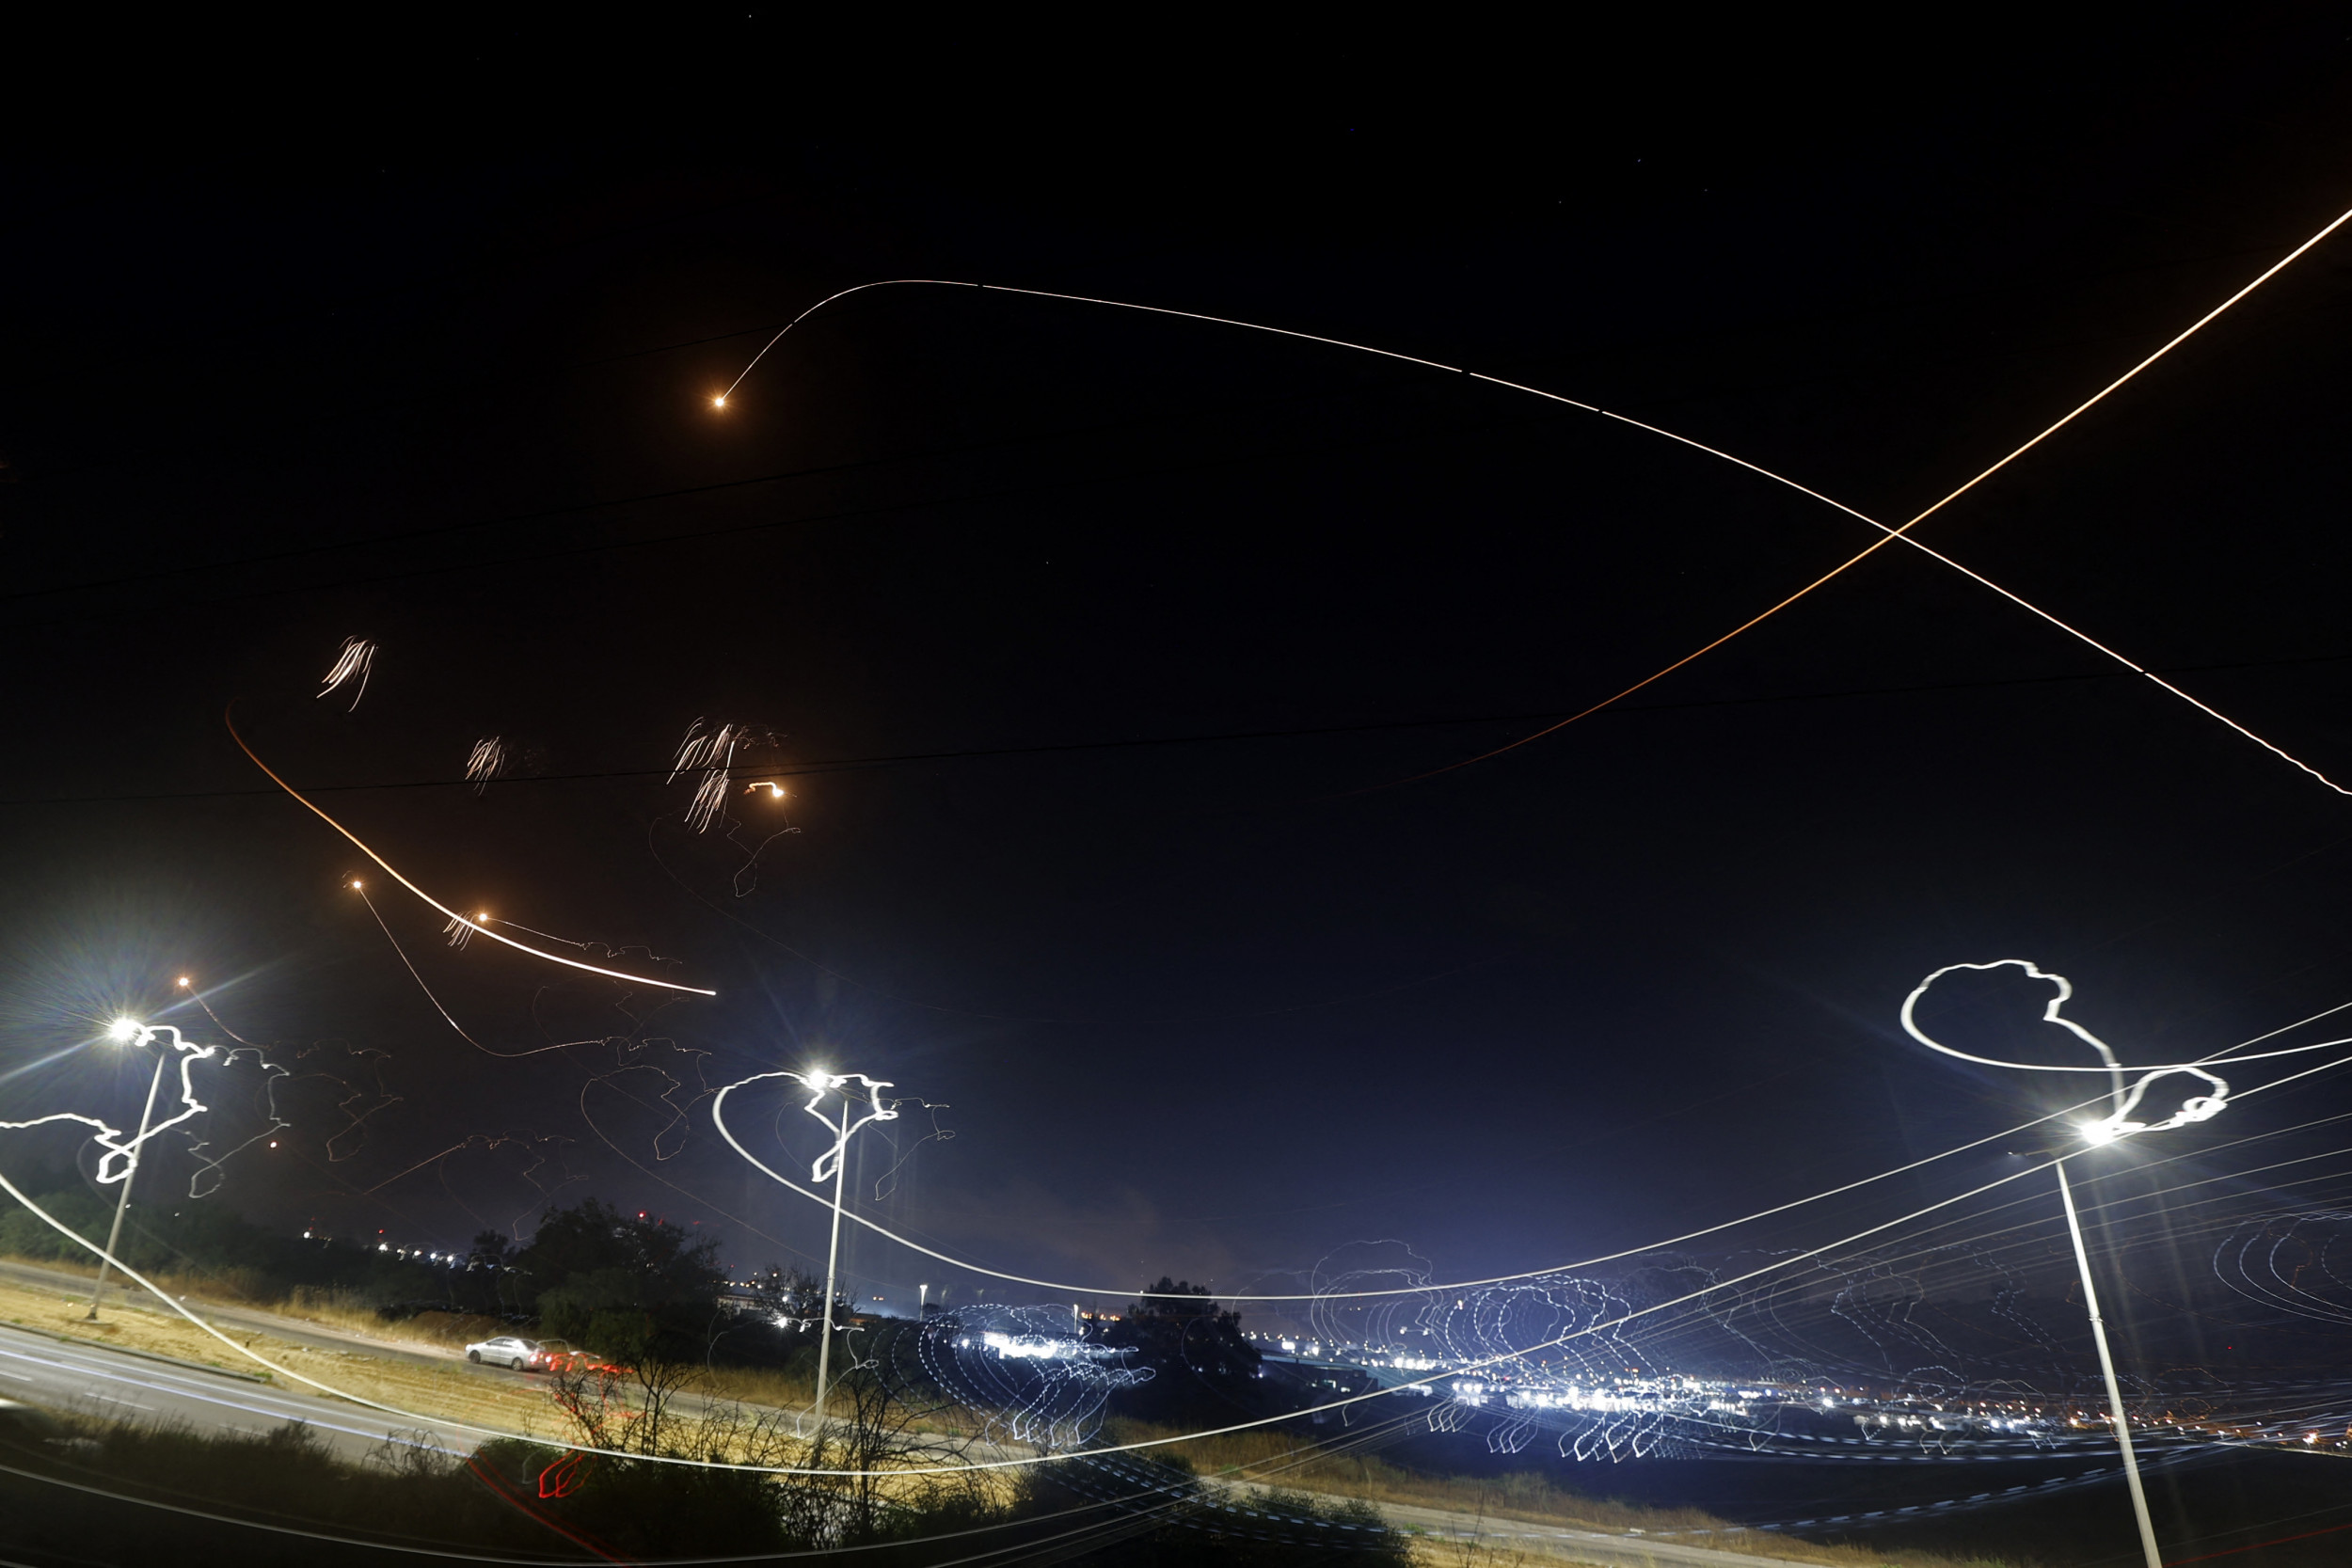 Rockets Rain Down on Israel--May 2021 (From Newseek: https://www.newsweek.com/us-condemns-rocket-strikes-israel-middle-east-rallies-around-palestinians-1590206)